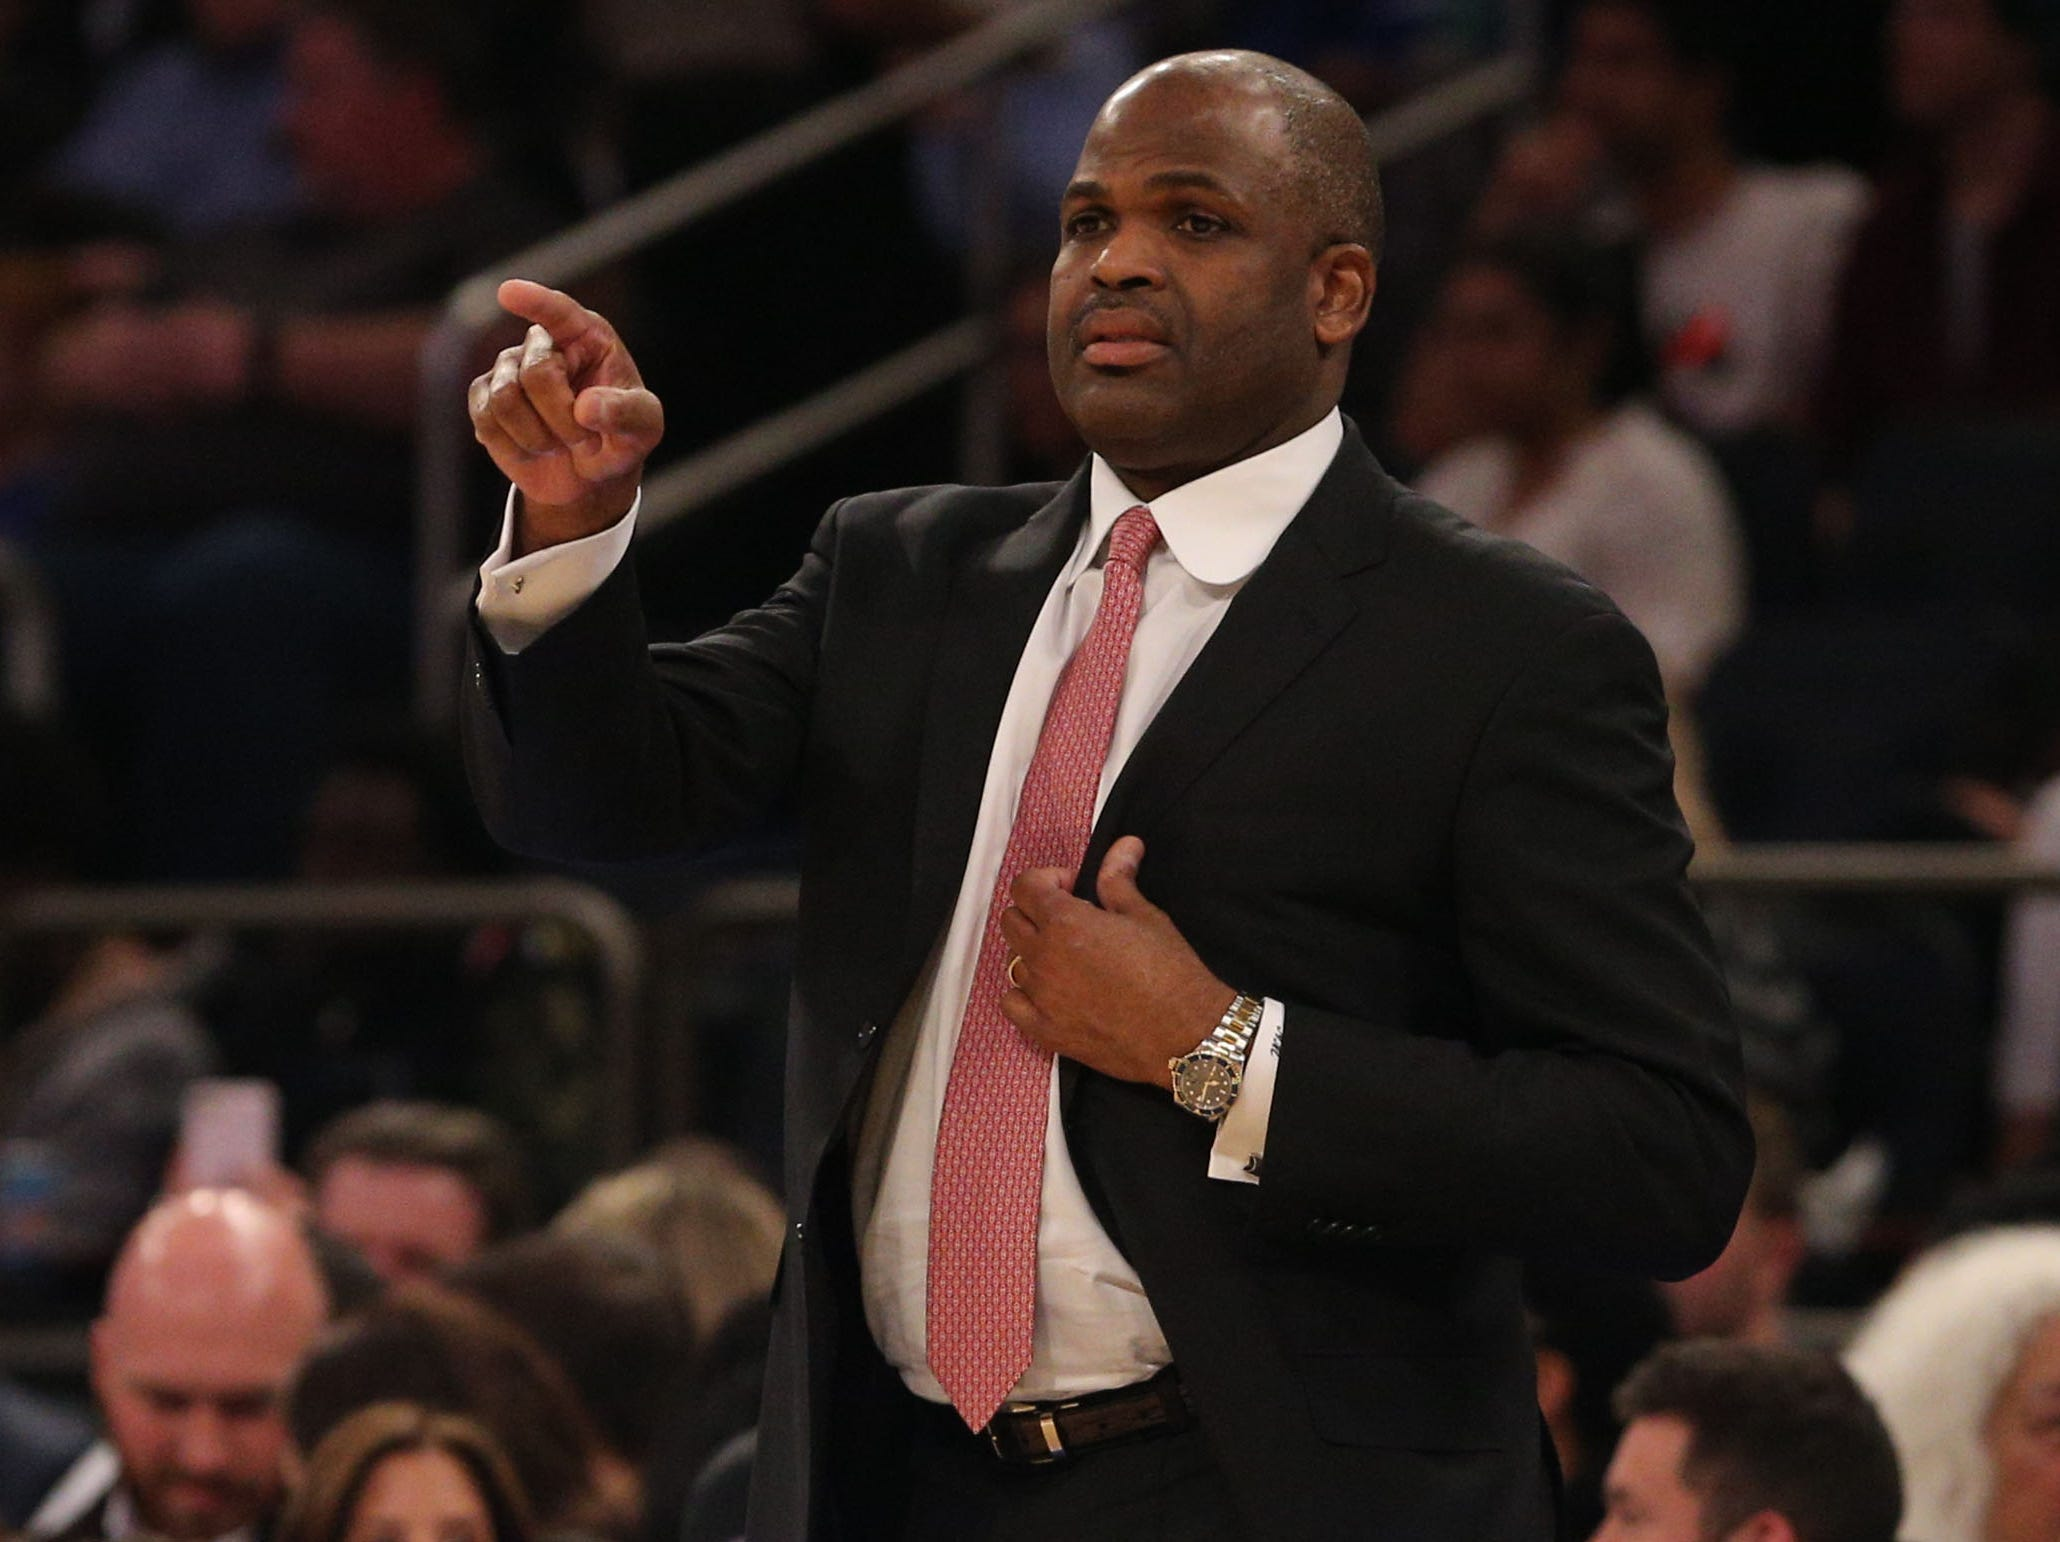 Jan 11, 2019; New York, NY, USA; Indiana Pacers head coach Nate McMillan coaches against the New York Knicks during the first quarter at Madison Square Garden. Mandatory Credit: Brad Penner-USA TODAY Sports